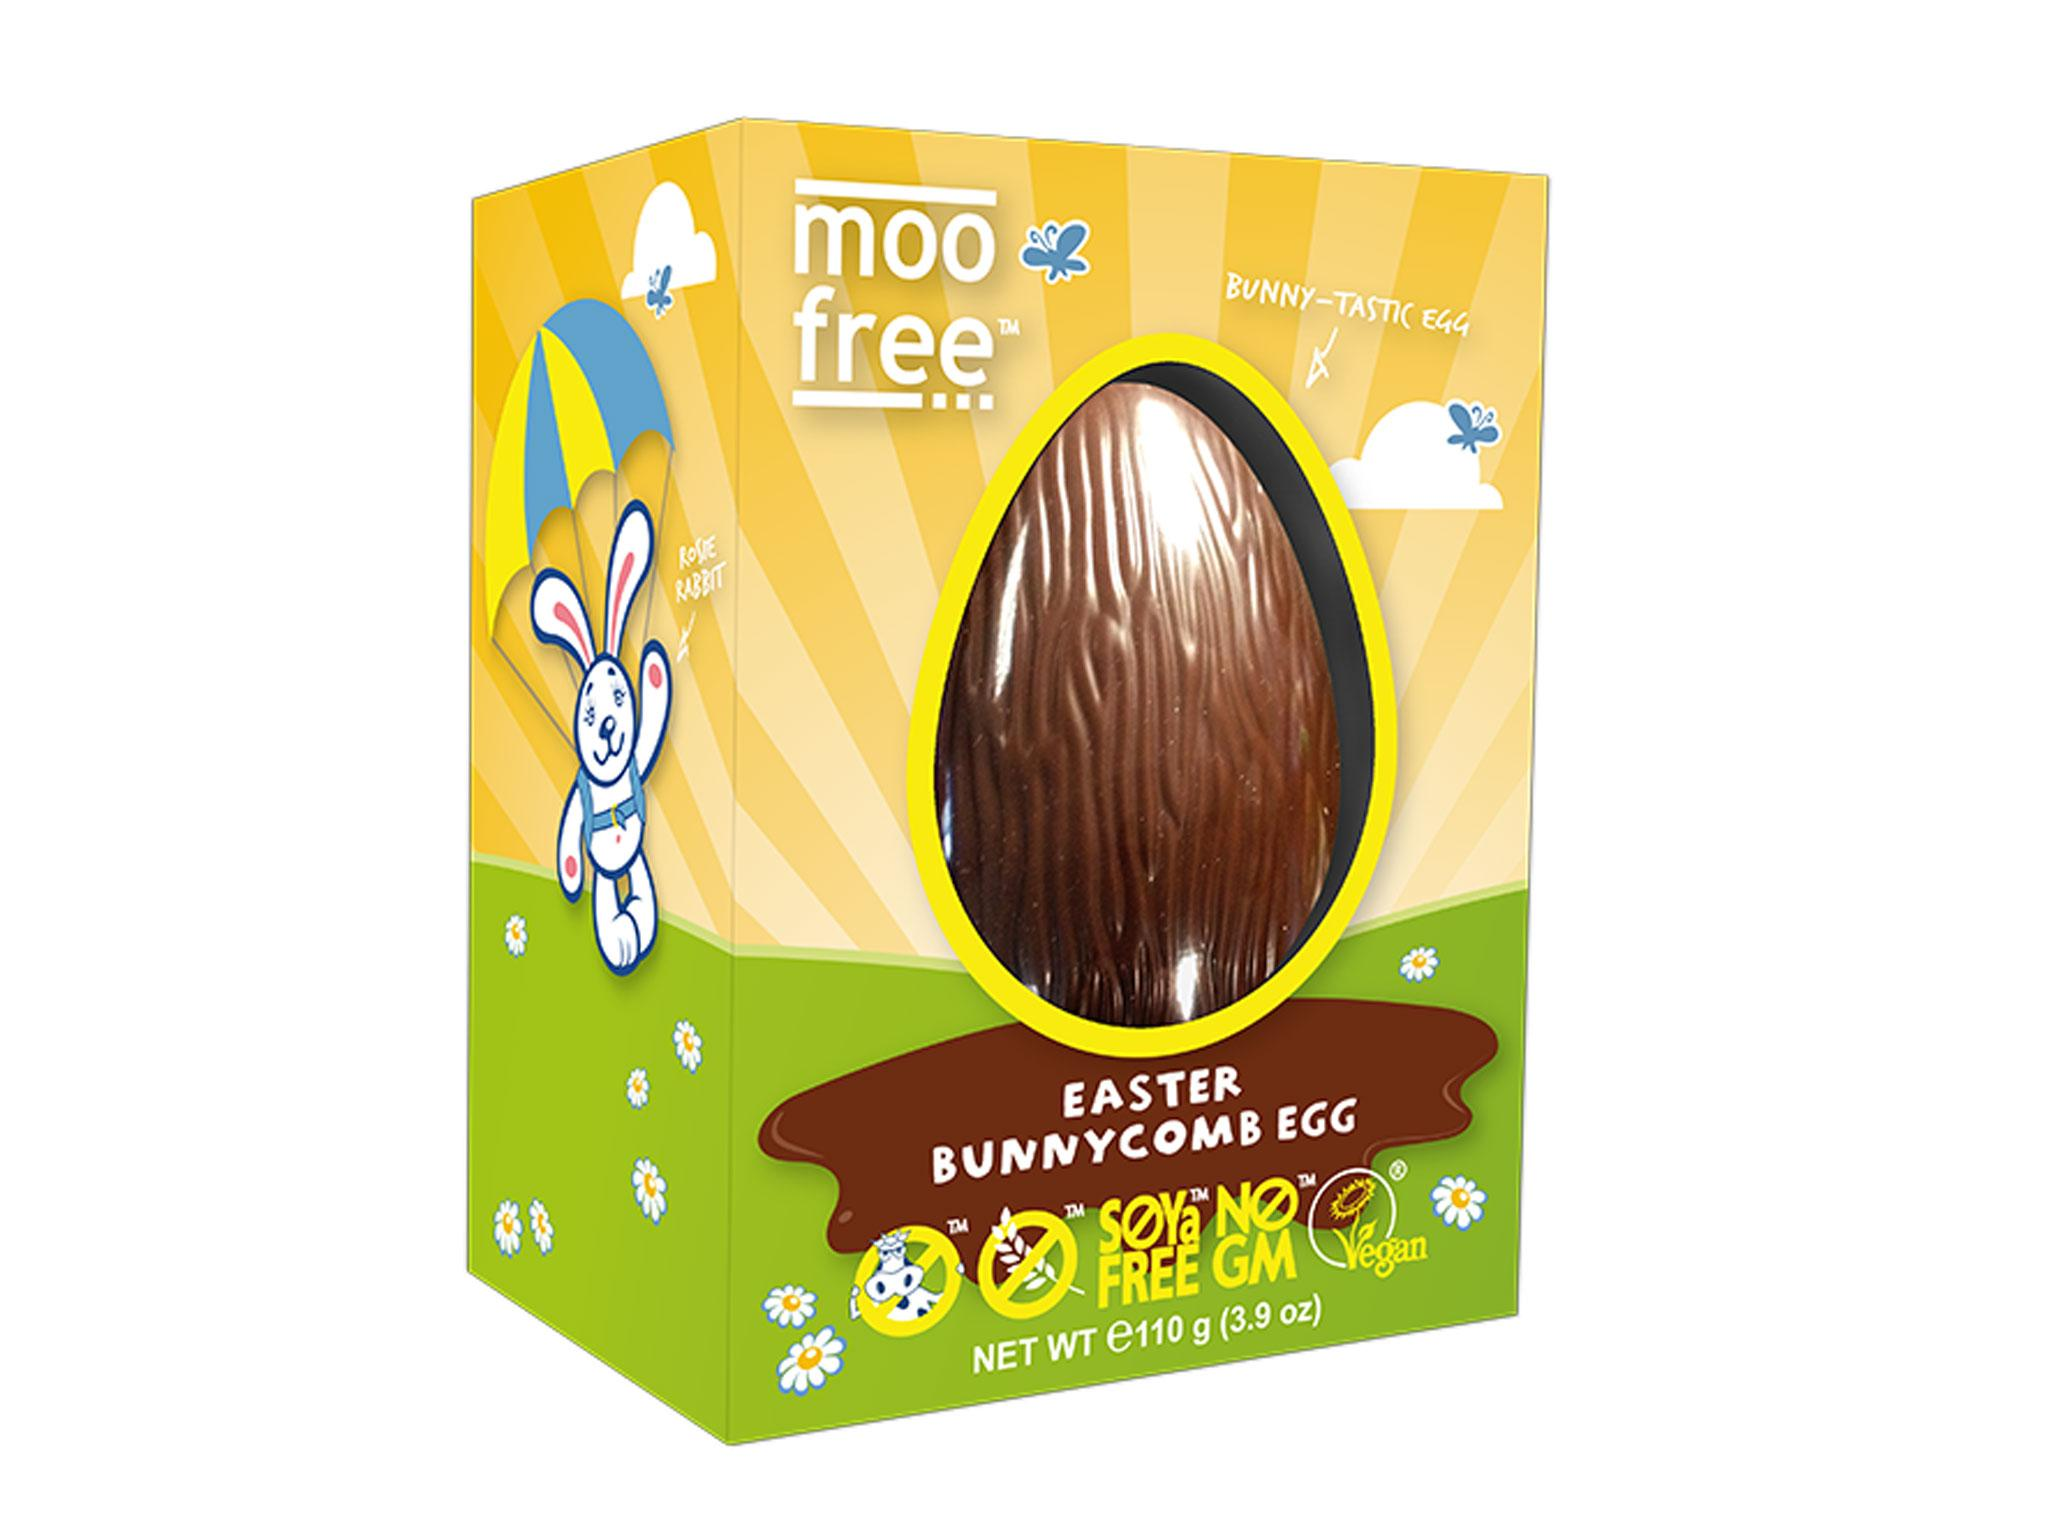 7 best vegan and dairy free easter eggs 2018 the independent both moo free and plamils products are ideal for kids at easter and this egg has the added bonus of having small pieces of honeycomb sprinkled throughout negle Images